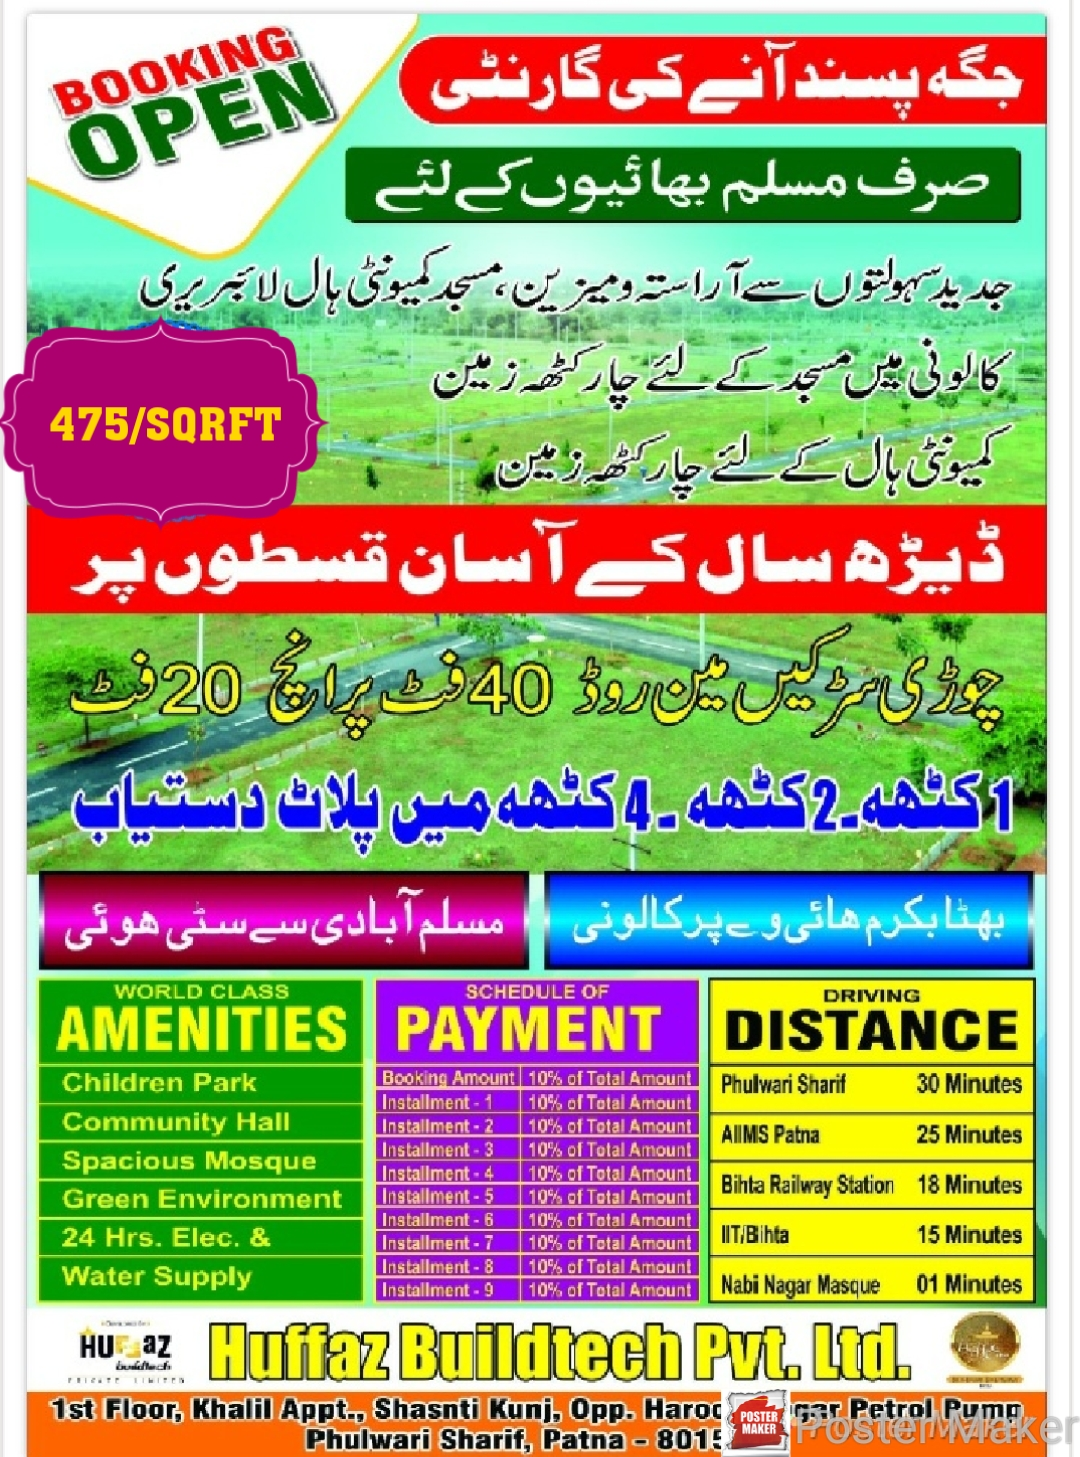 Buy Residential Plot in Huffaz city Bikram Patna